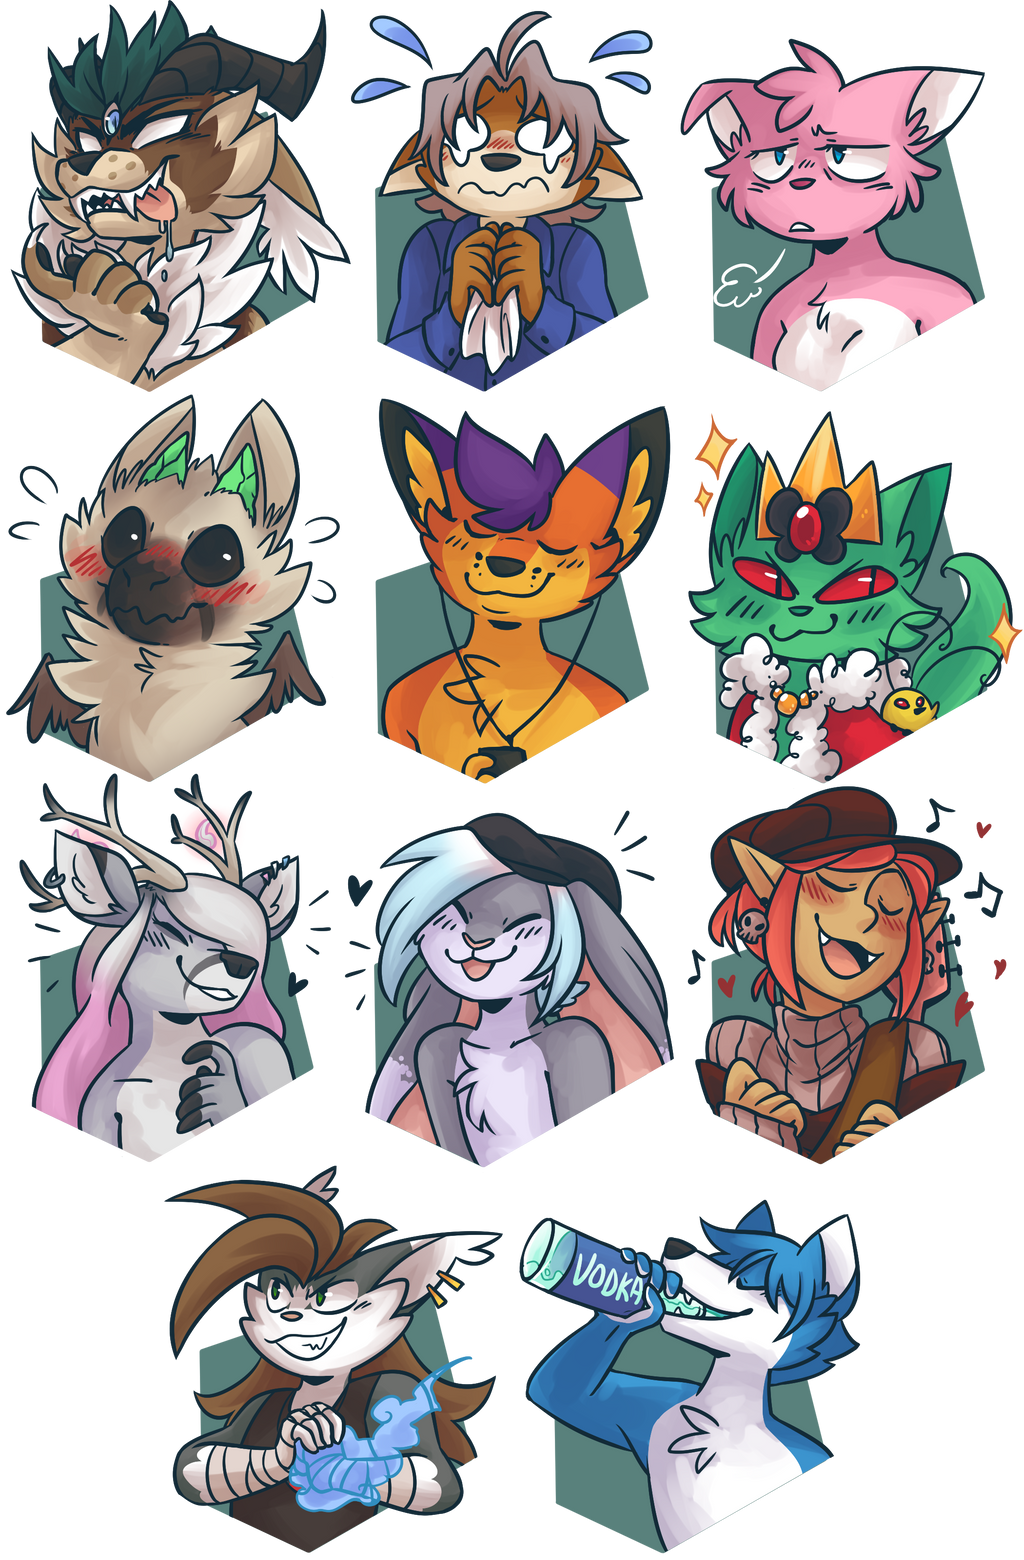 May 2017 Character Portraits by ClefdeSoll